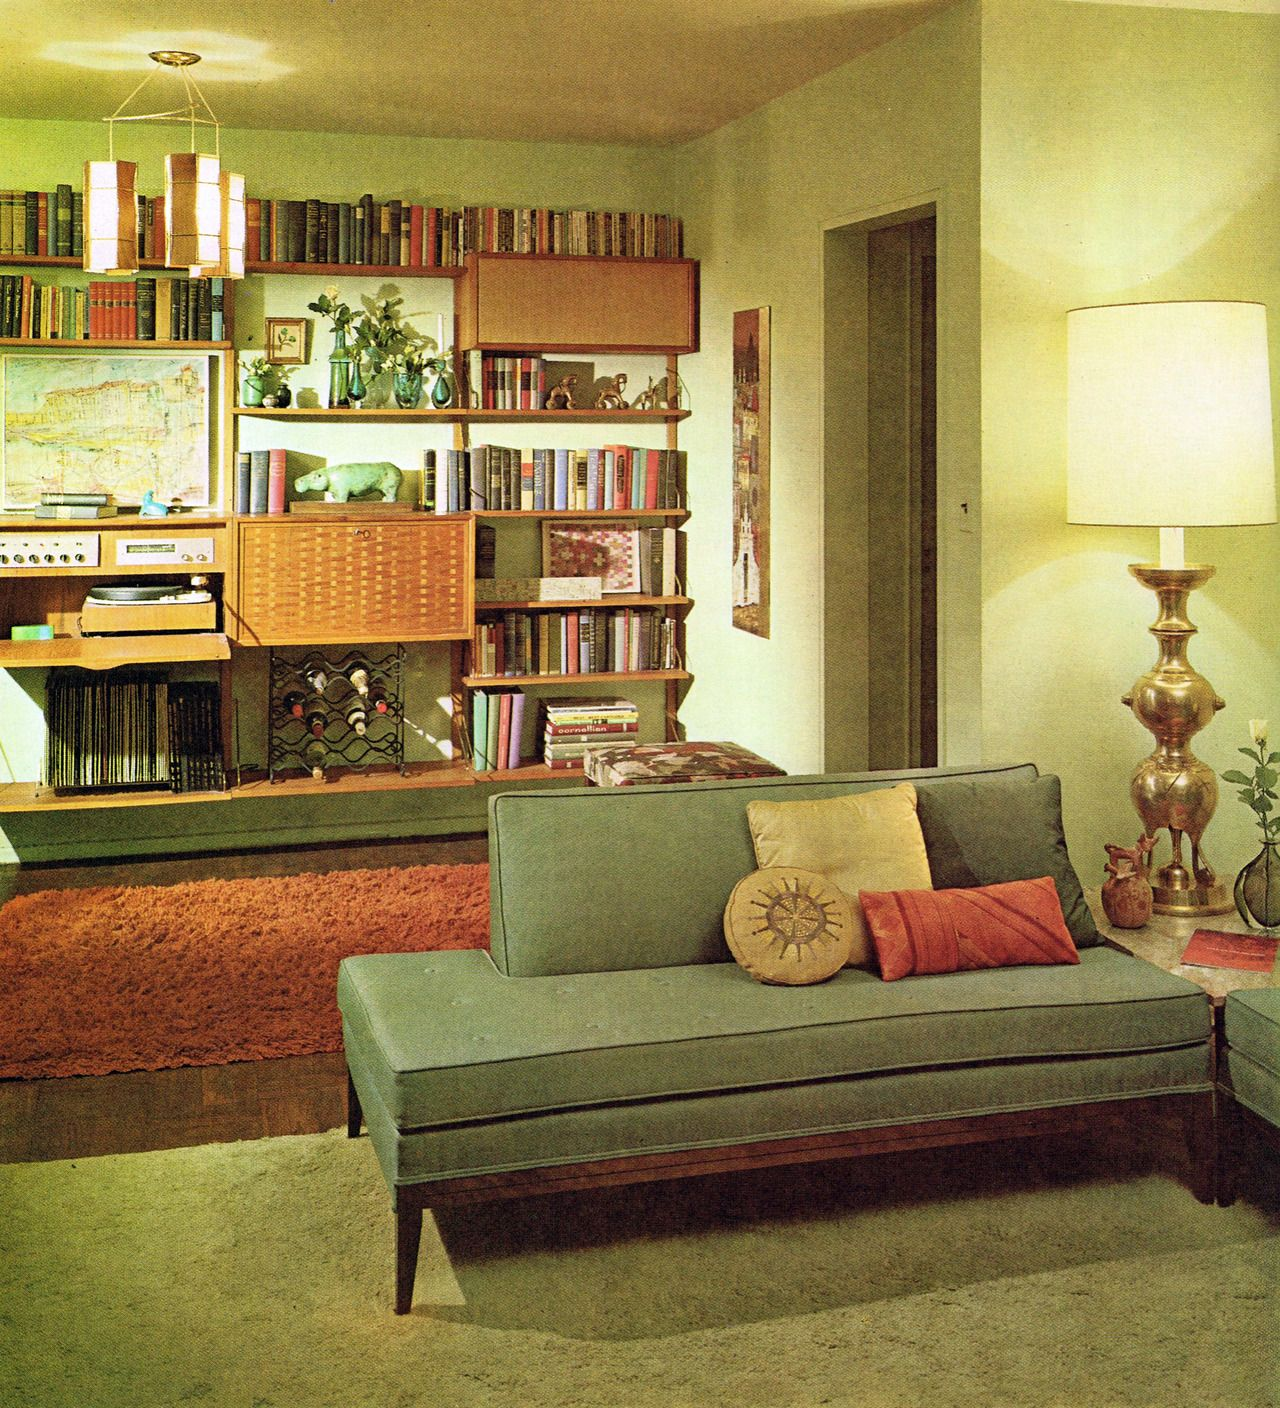 50 inspiring living room ideas - Retro Living Room Ideas